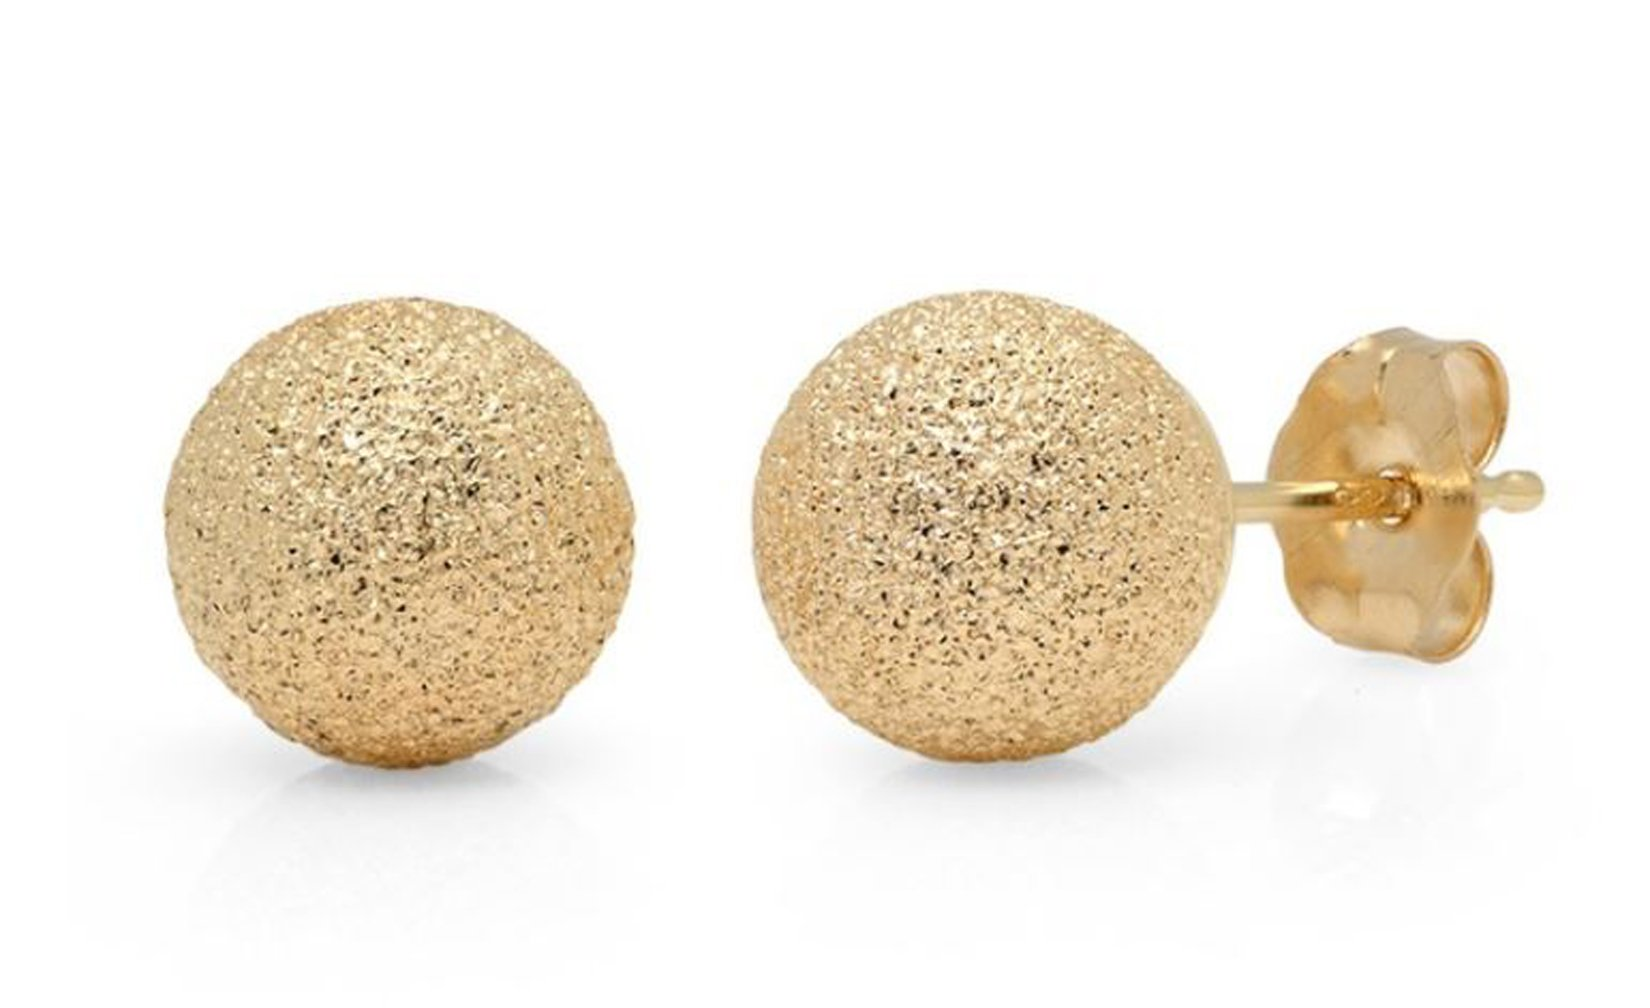 Glimmer Stardust 14K Yellow Gold Ball Studs Earrings 4MM-10MM (8MM) by JewelMore (Image #1)